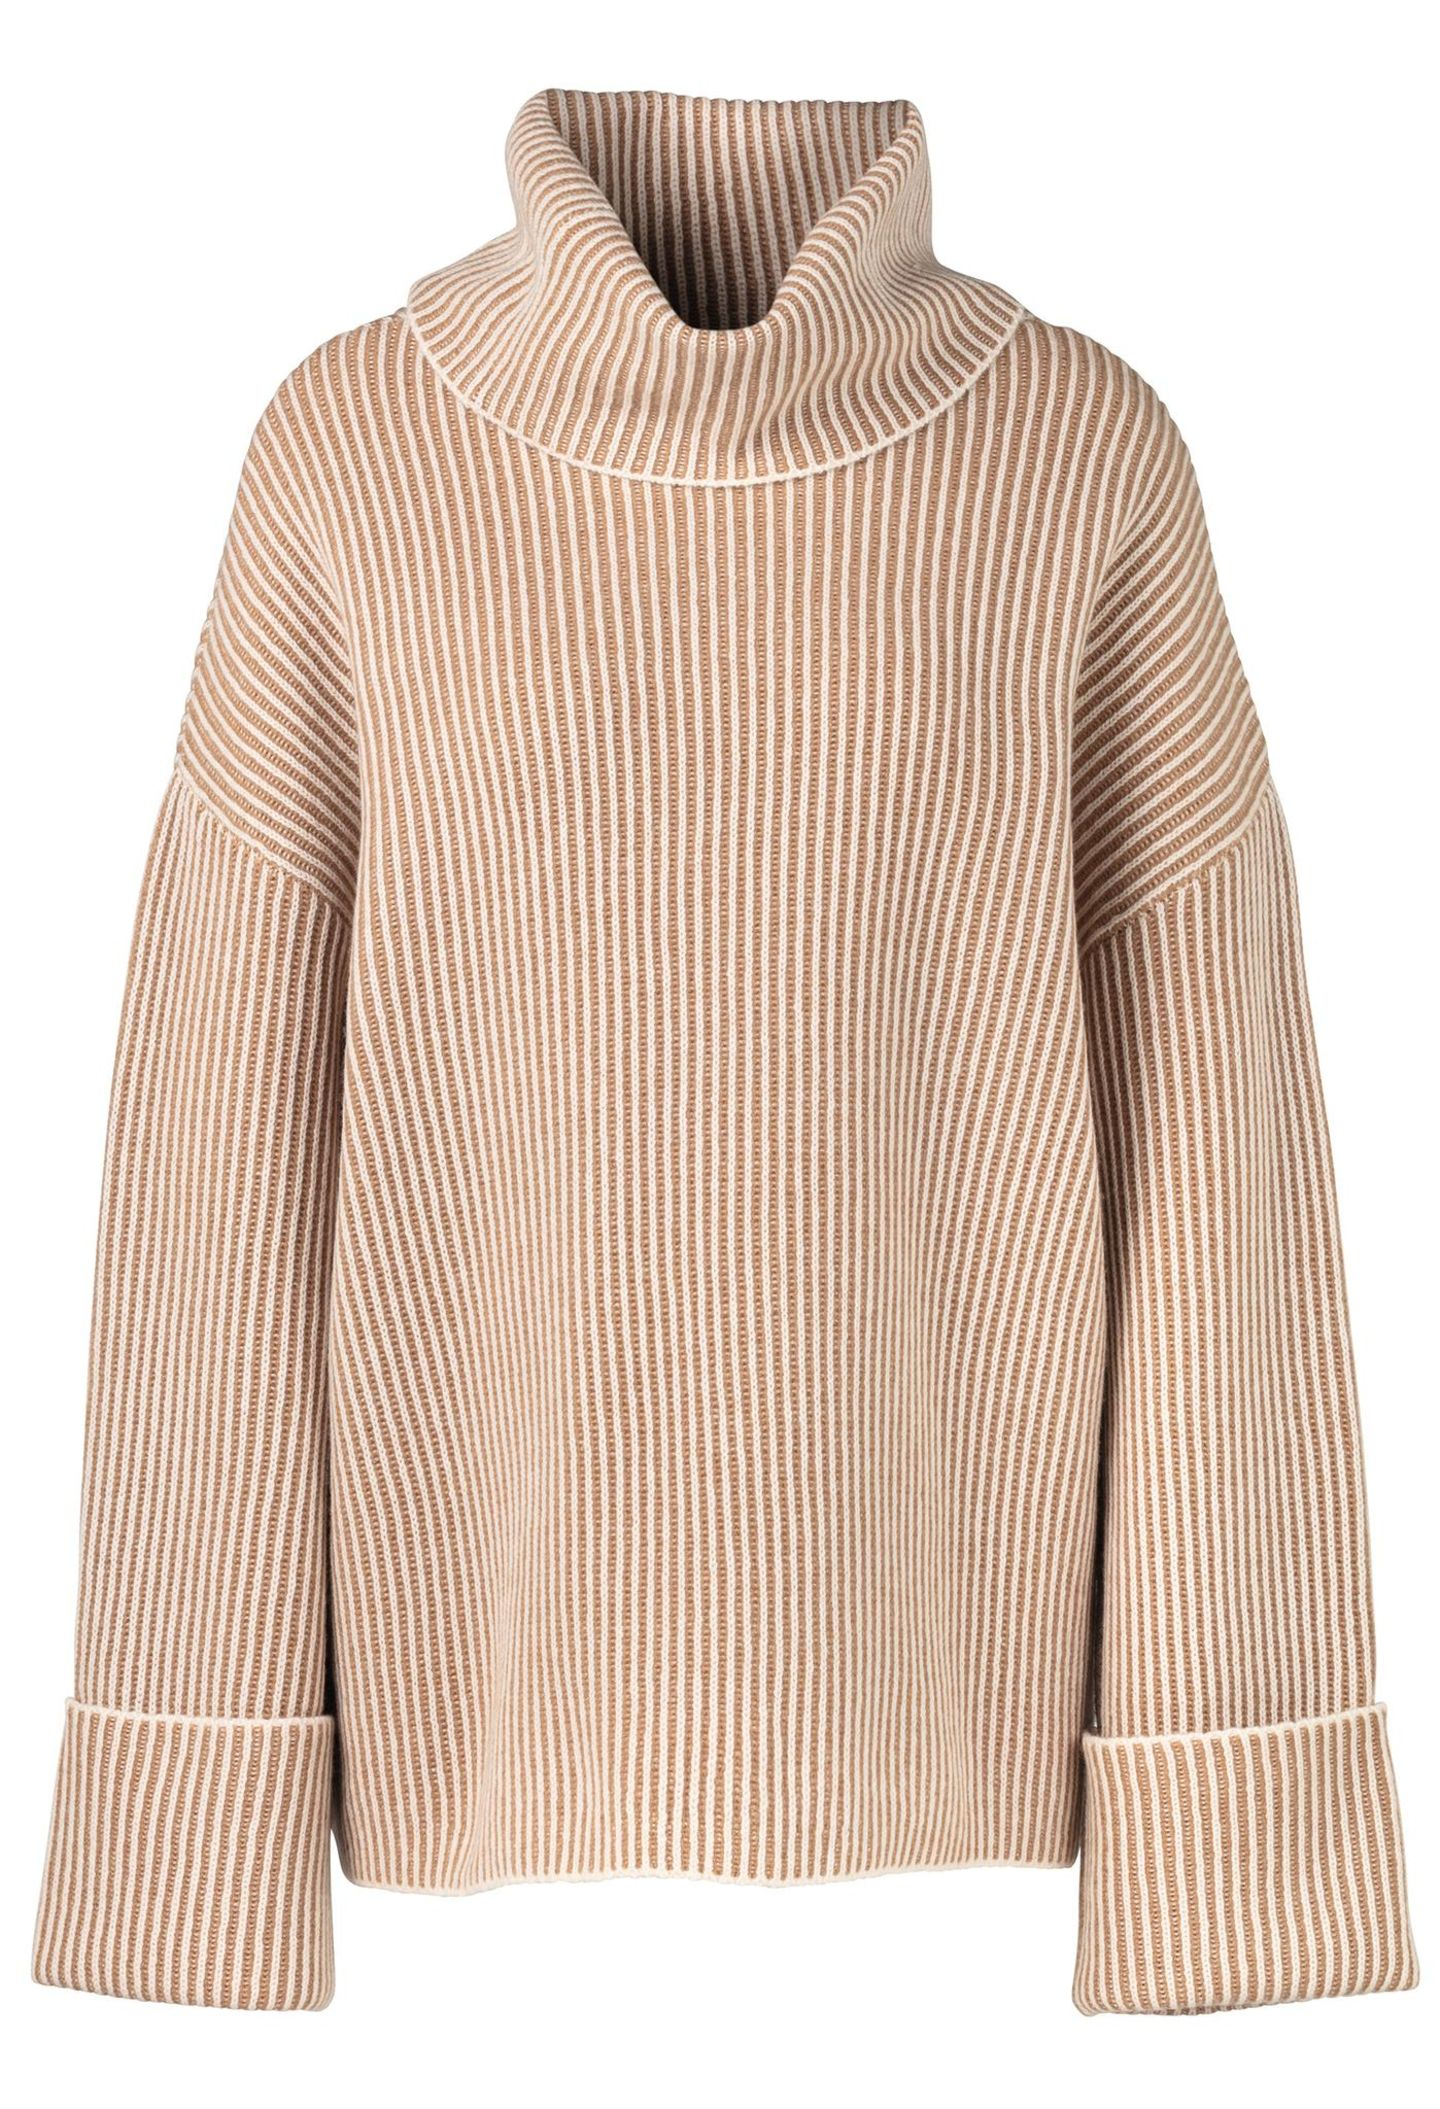 1 Style, 2 Looks: Cashmere Pullover